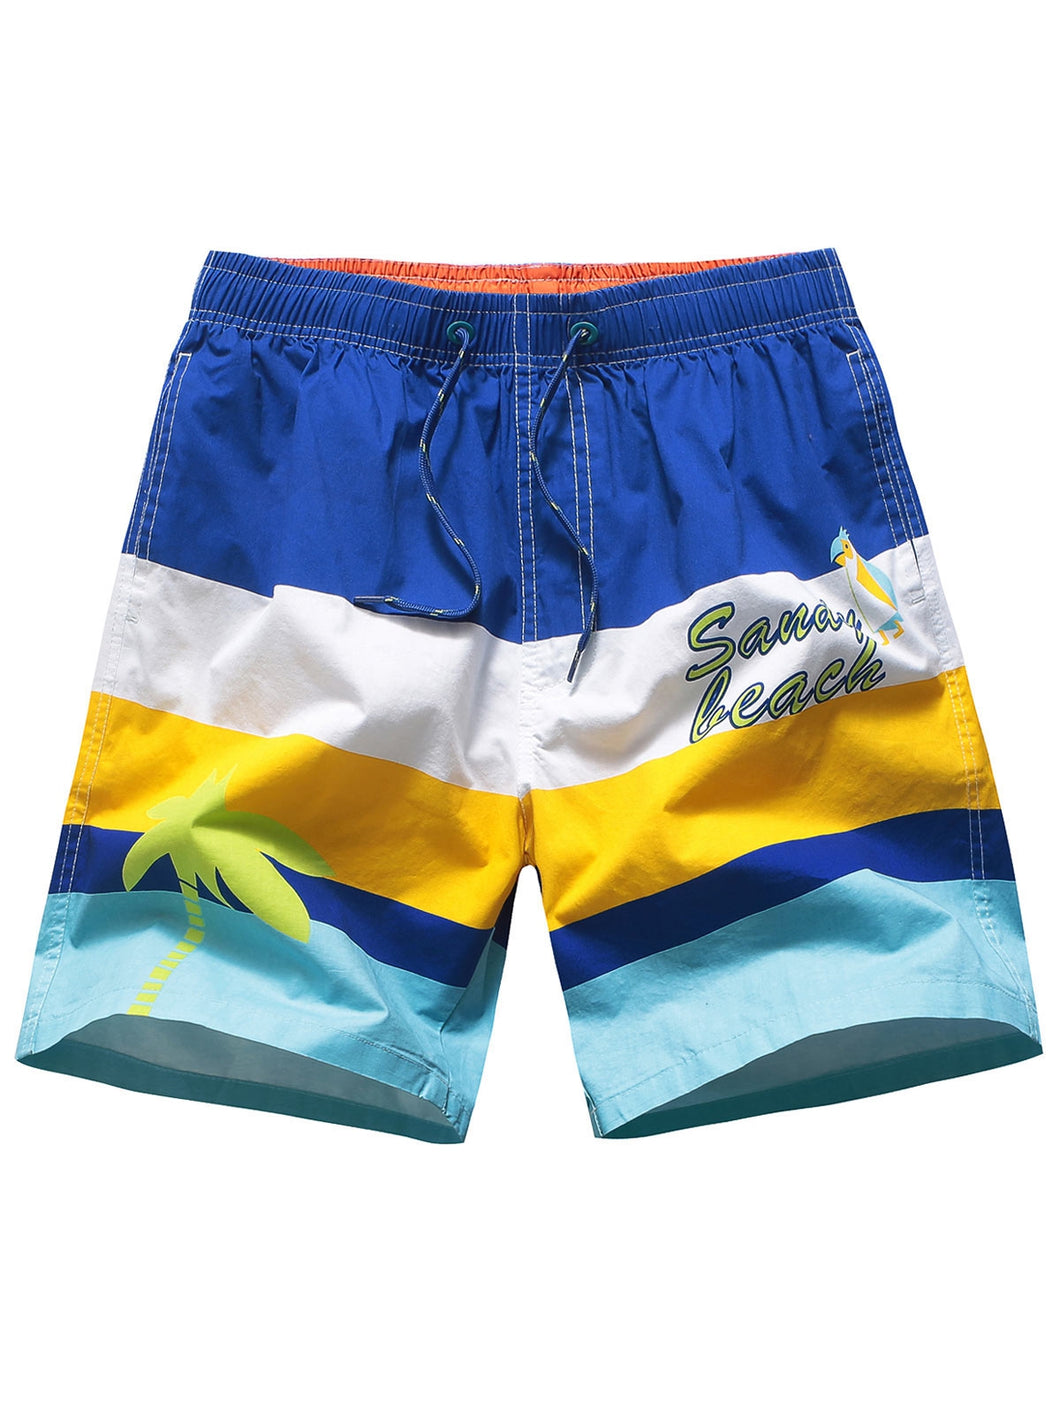 High Waist Block Board Shorts